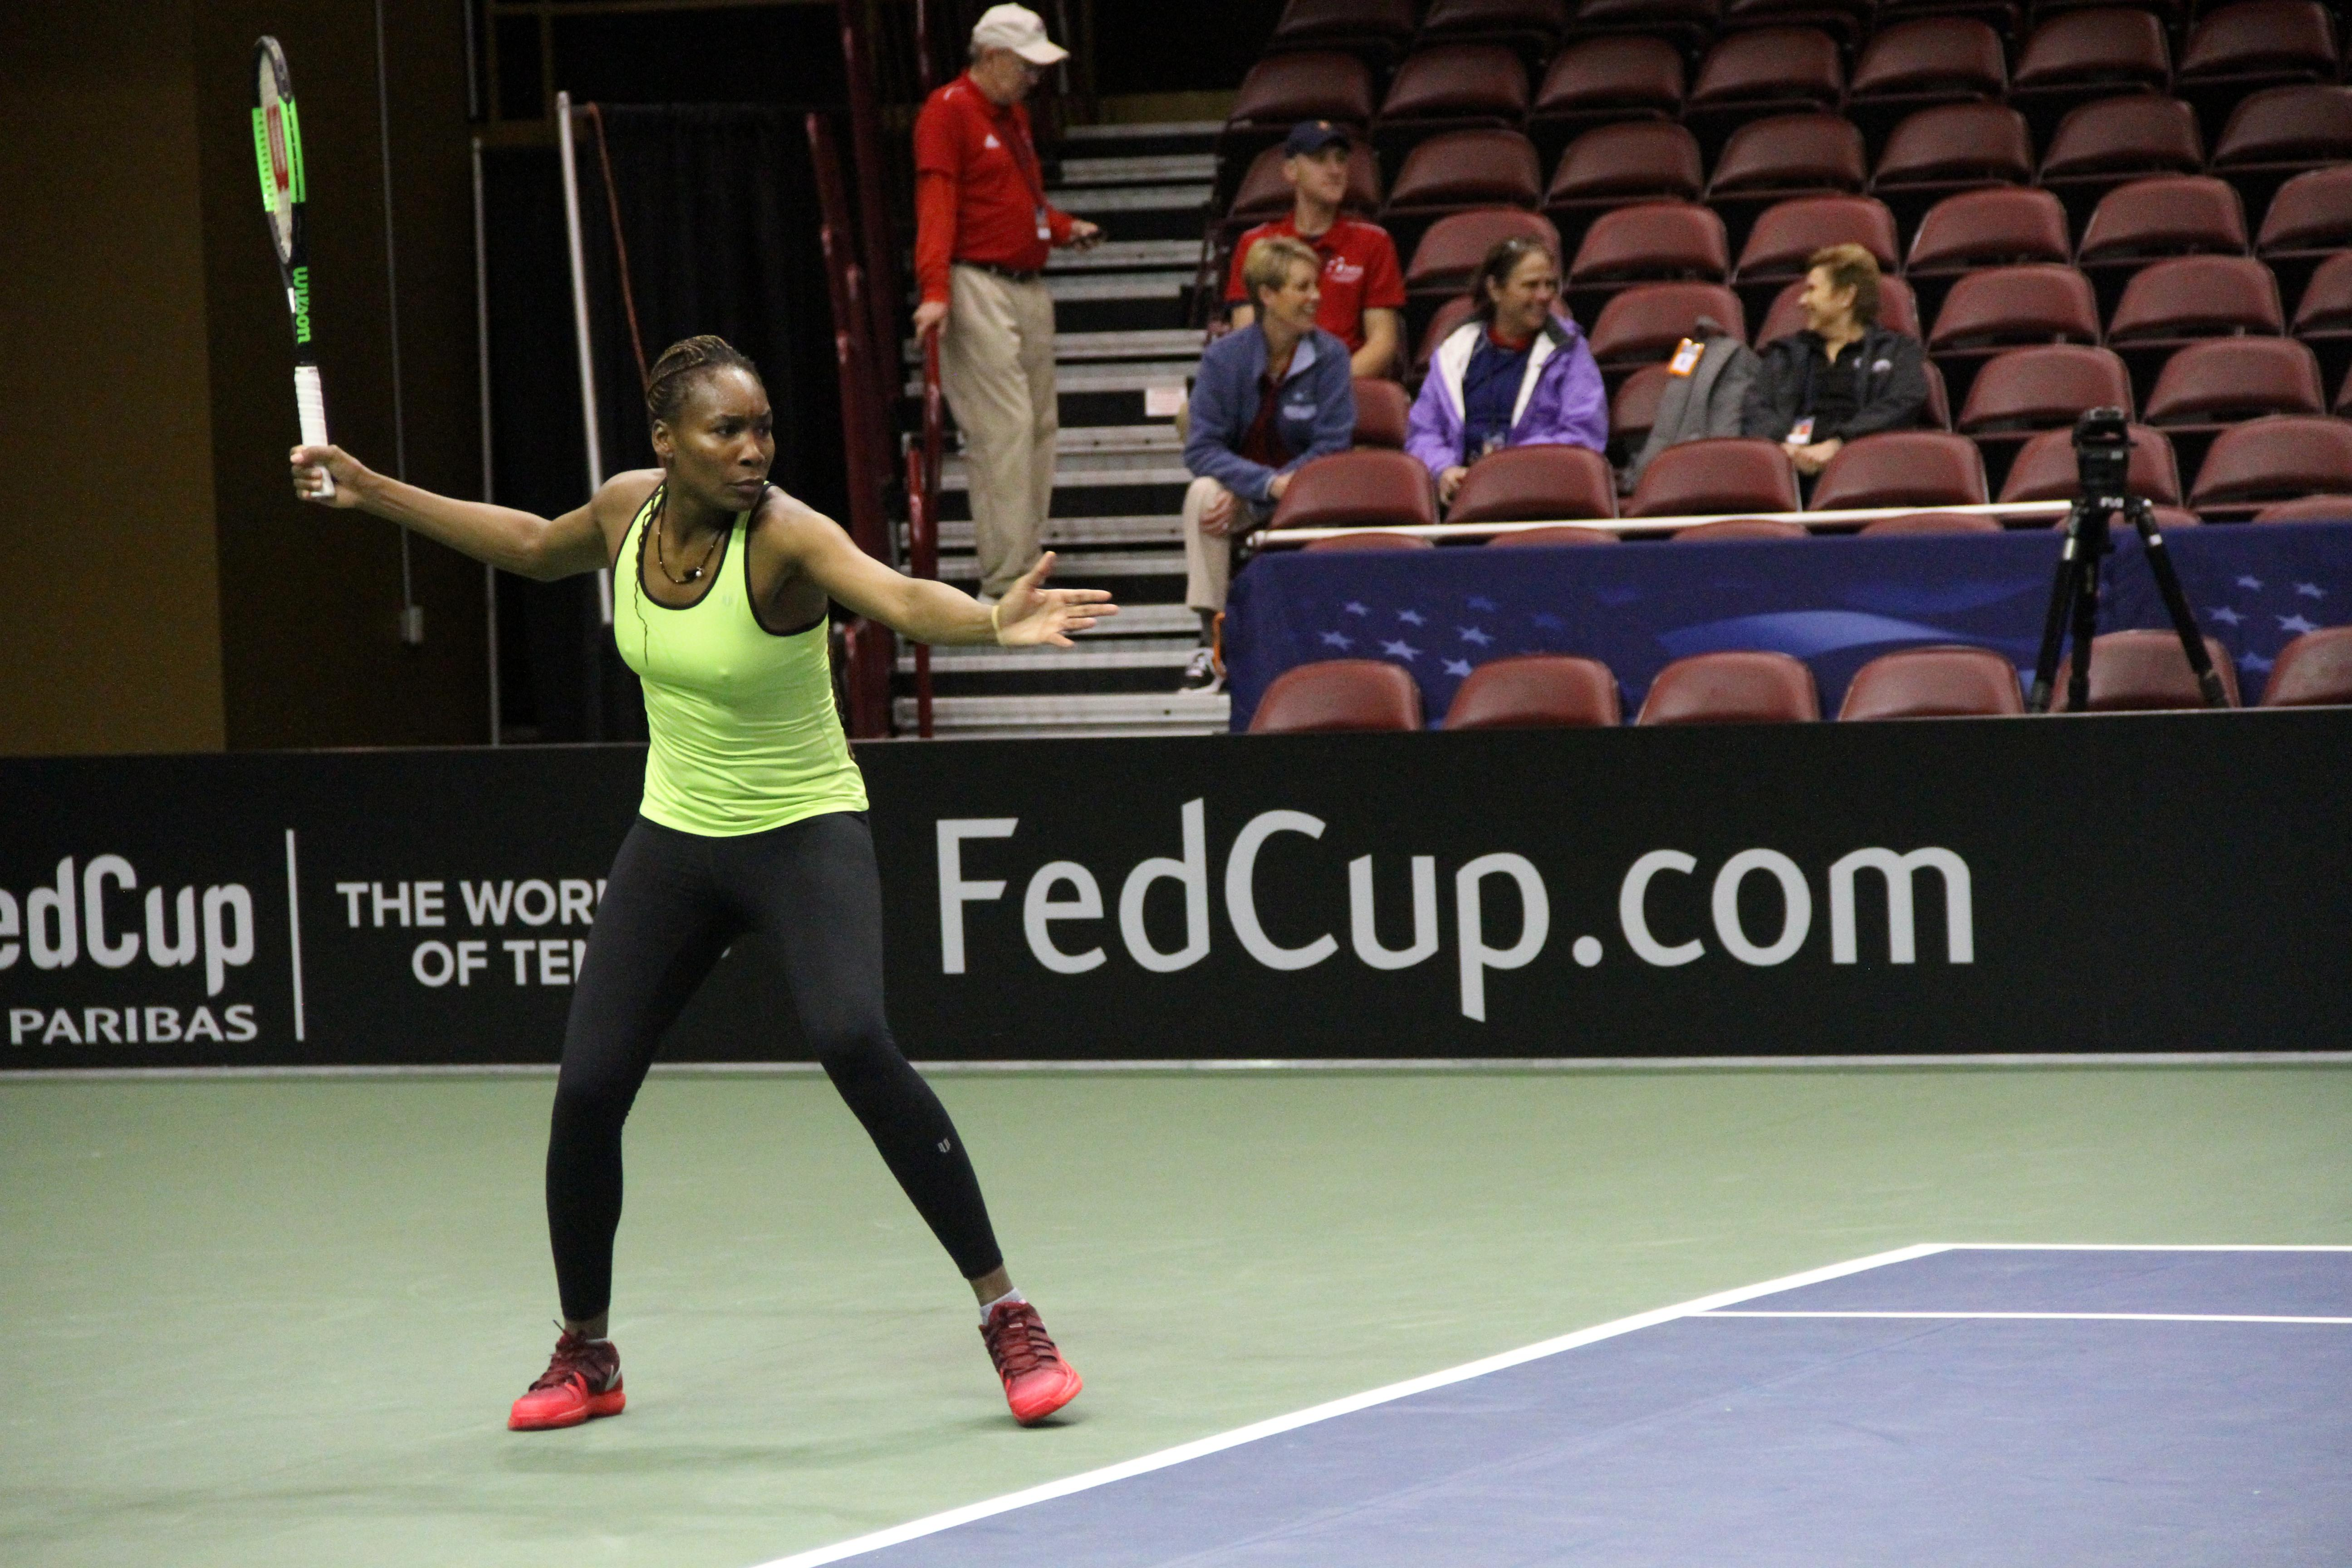 Venus Williams practices at the US Cellular Center on Feb. 7, 2018, ahead of the Fed Cup. (Photo credit: WLOS Staff)